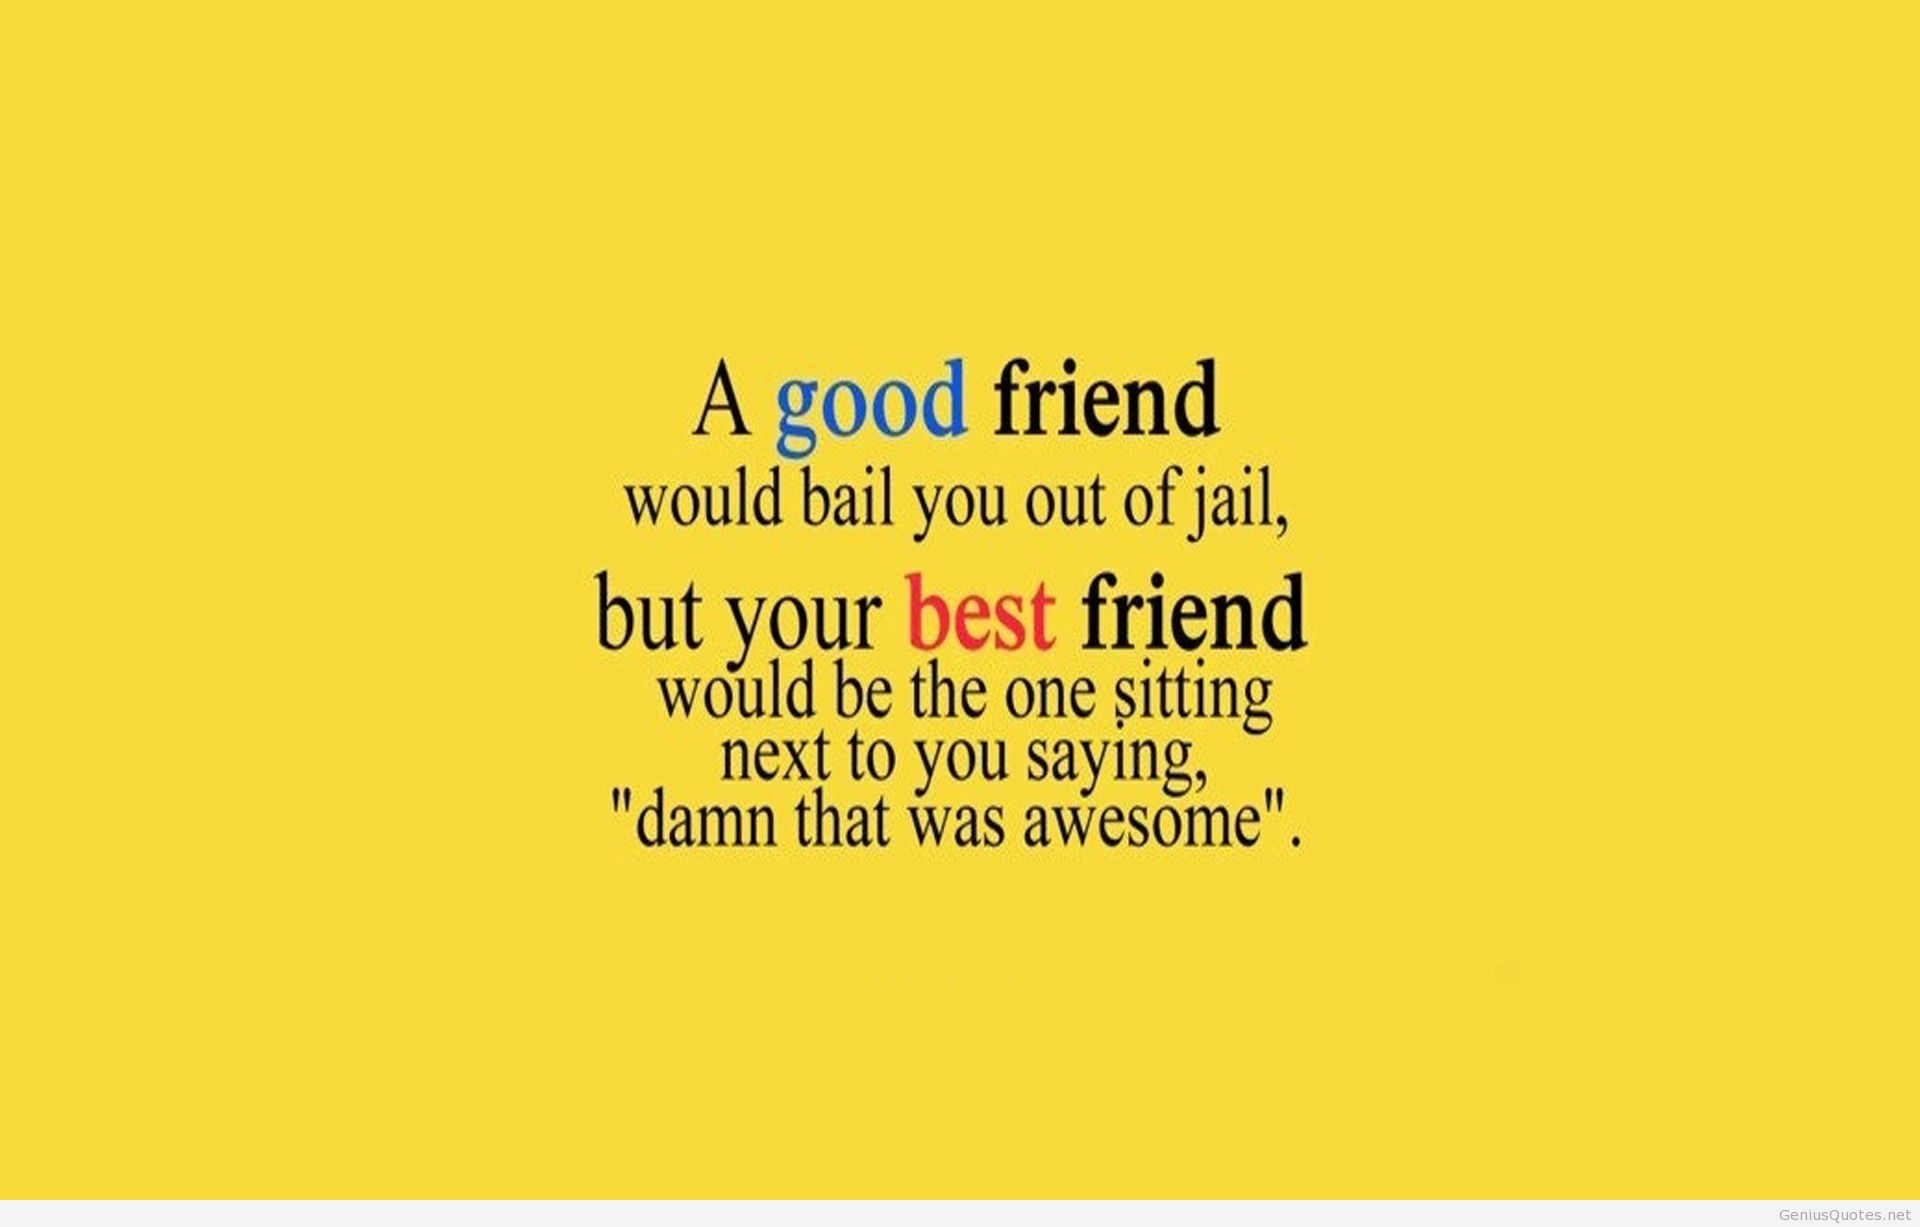 Quotes About Love Vs Friendship : what you too best friend quotes good friend and best friend quotes